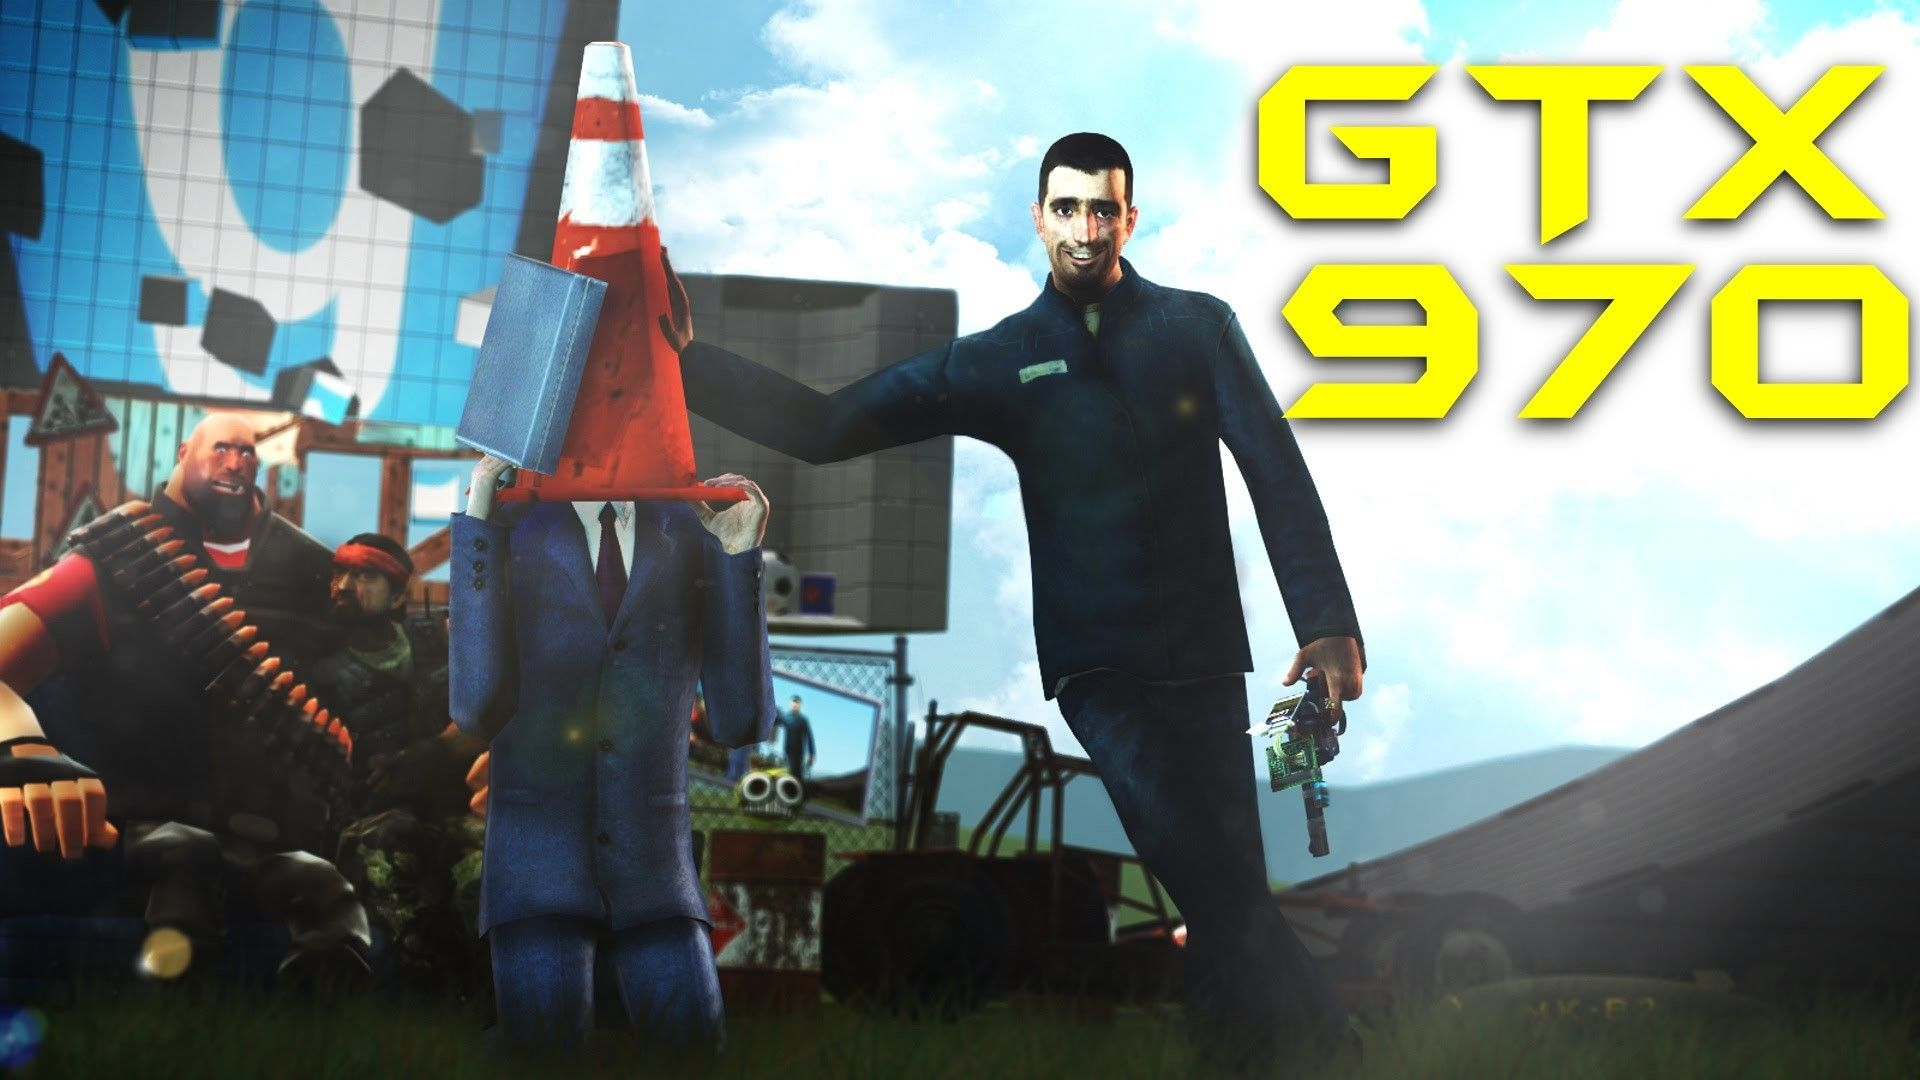 Garrys Mod 13 Wallpapers On Wallpaperdog